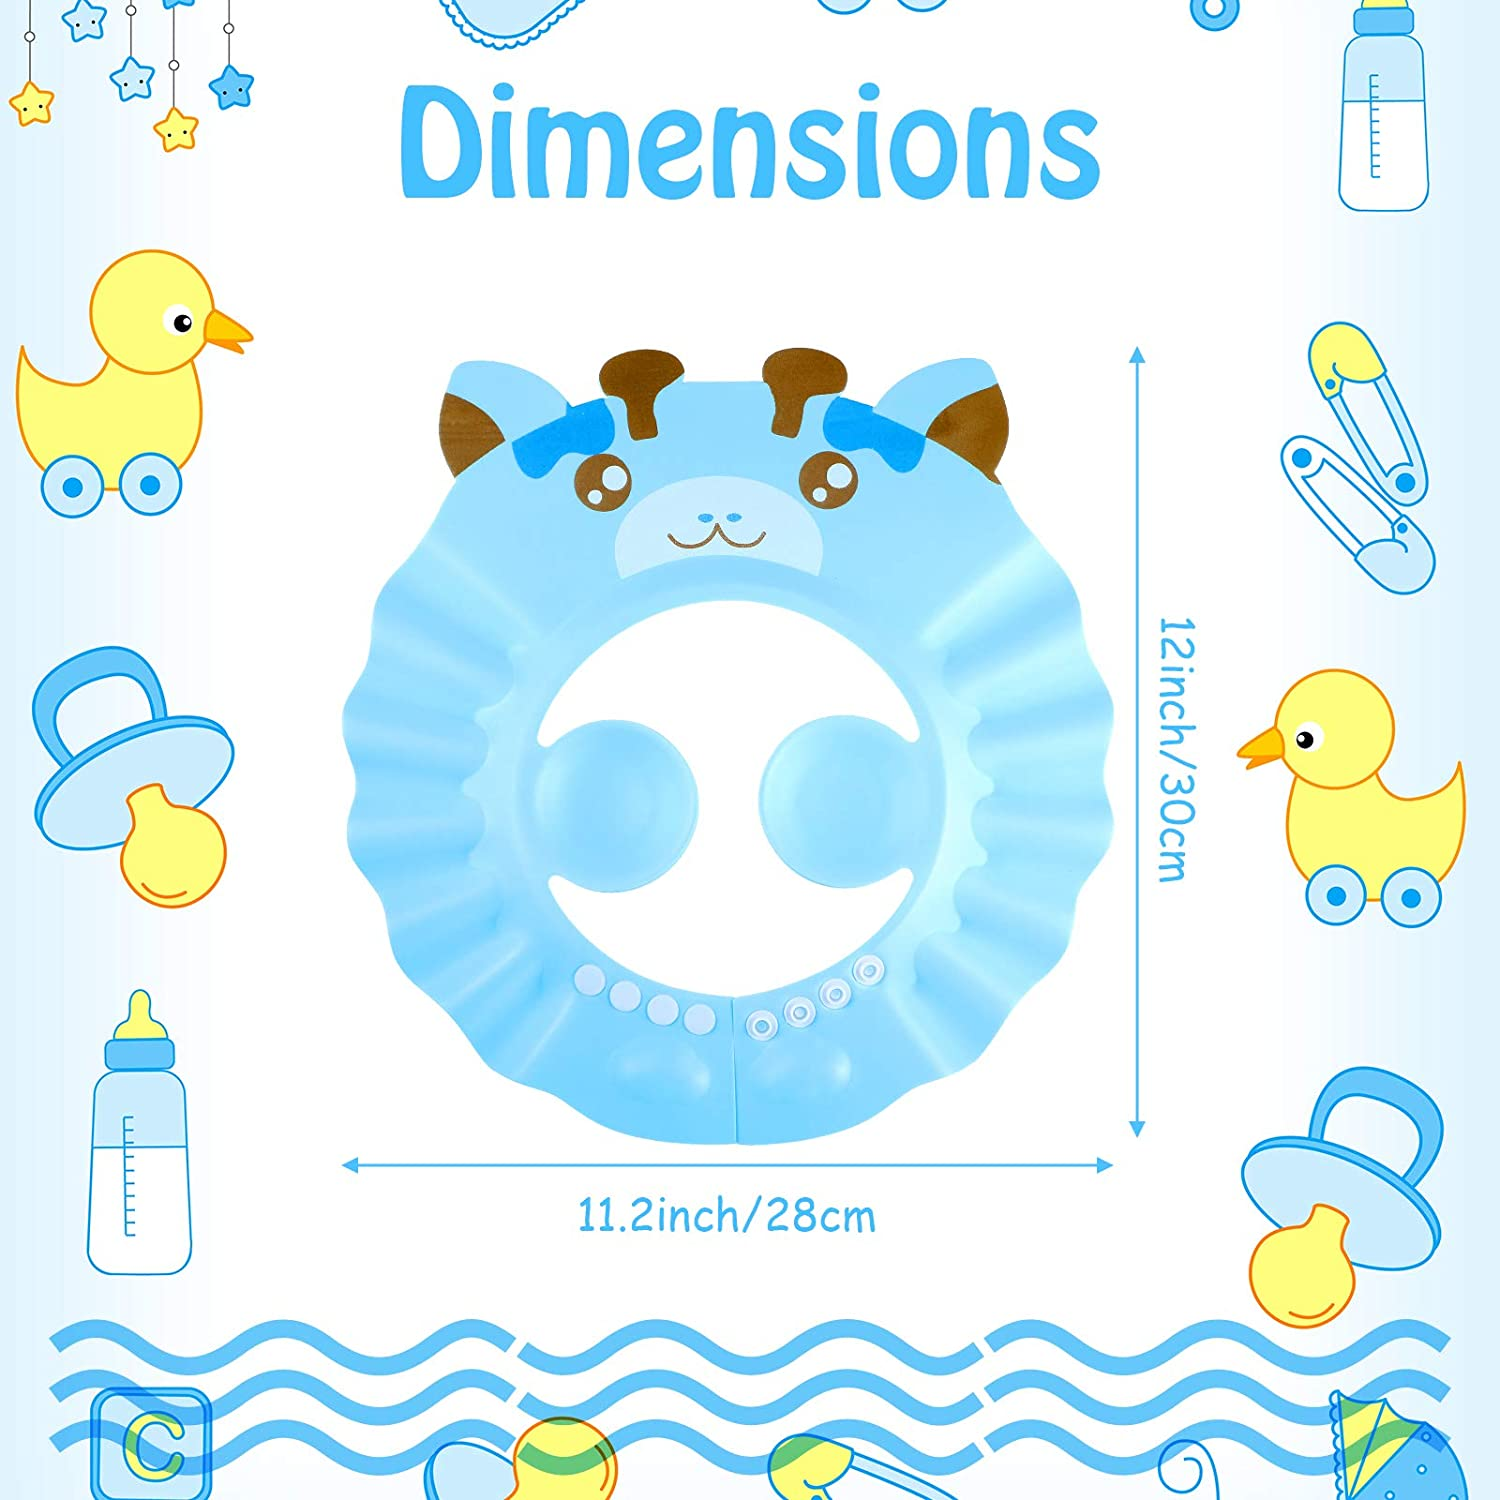 3 Pieces Baby Shower Cap Adjustable Baby Bath Visor Infant Bathing Protection Cap Safe Shampoo Shower Hat with Ear Protection Baby Hair Washing Aids for Baby Toddler Children Kids, Blue Yellow Pink